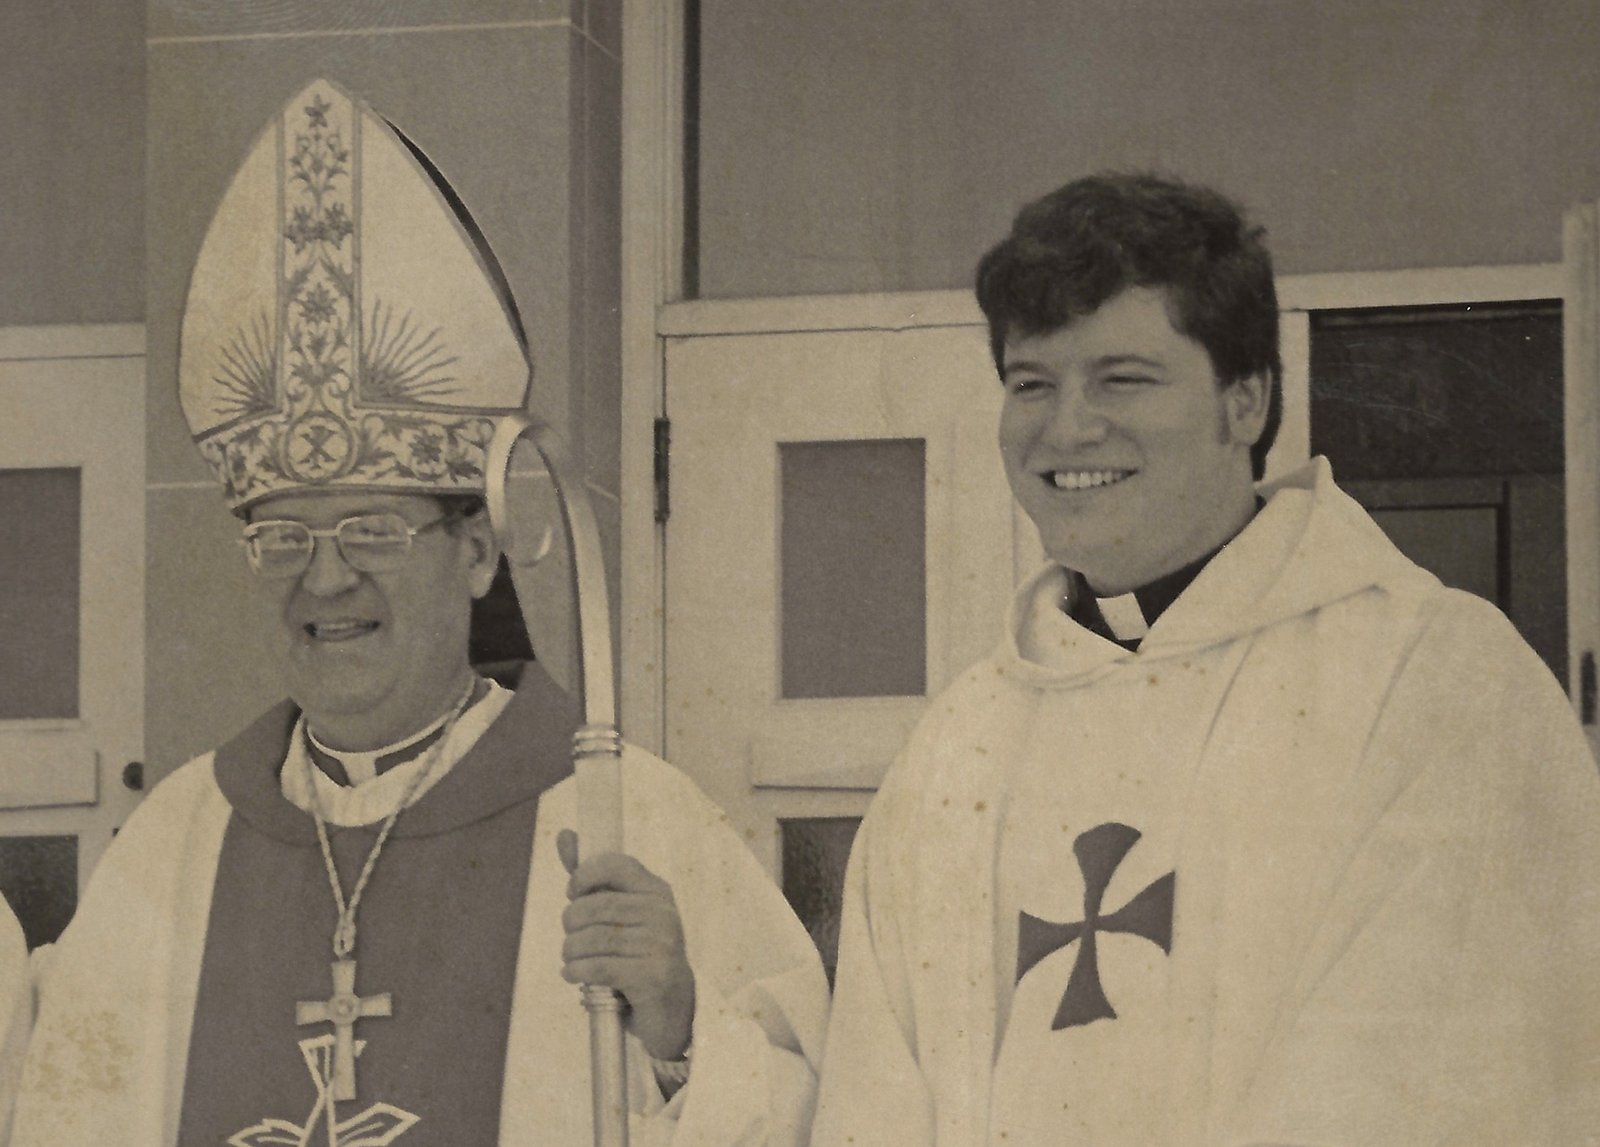 Father Slattery following his ordination by Bishop John McNabb, O.S.A.